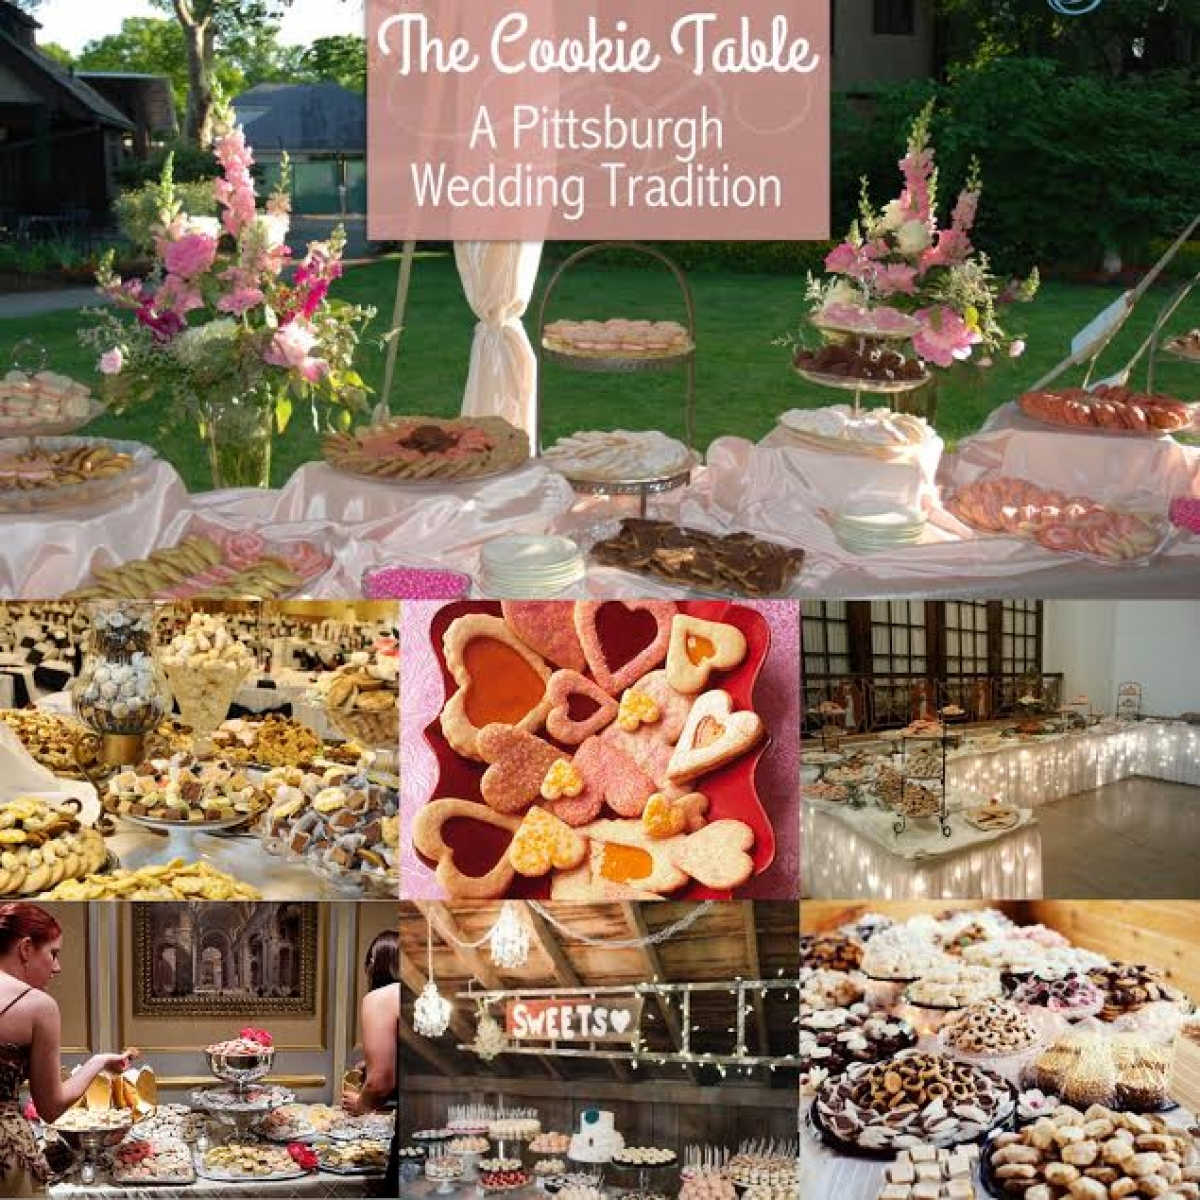 cookies table at a weddingwhat if youve been to a pittsburgh wedding youve experienced the joy and pleasure of a cookie table